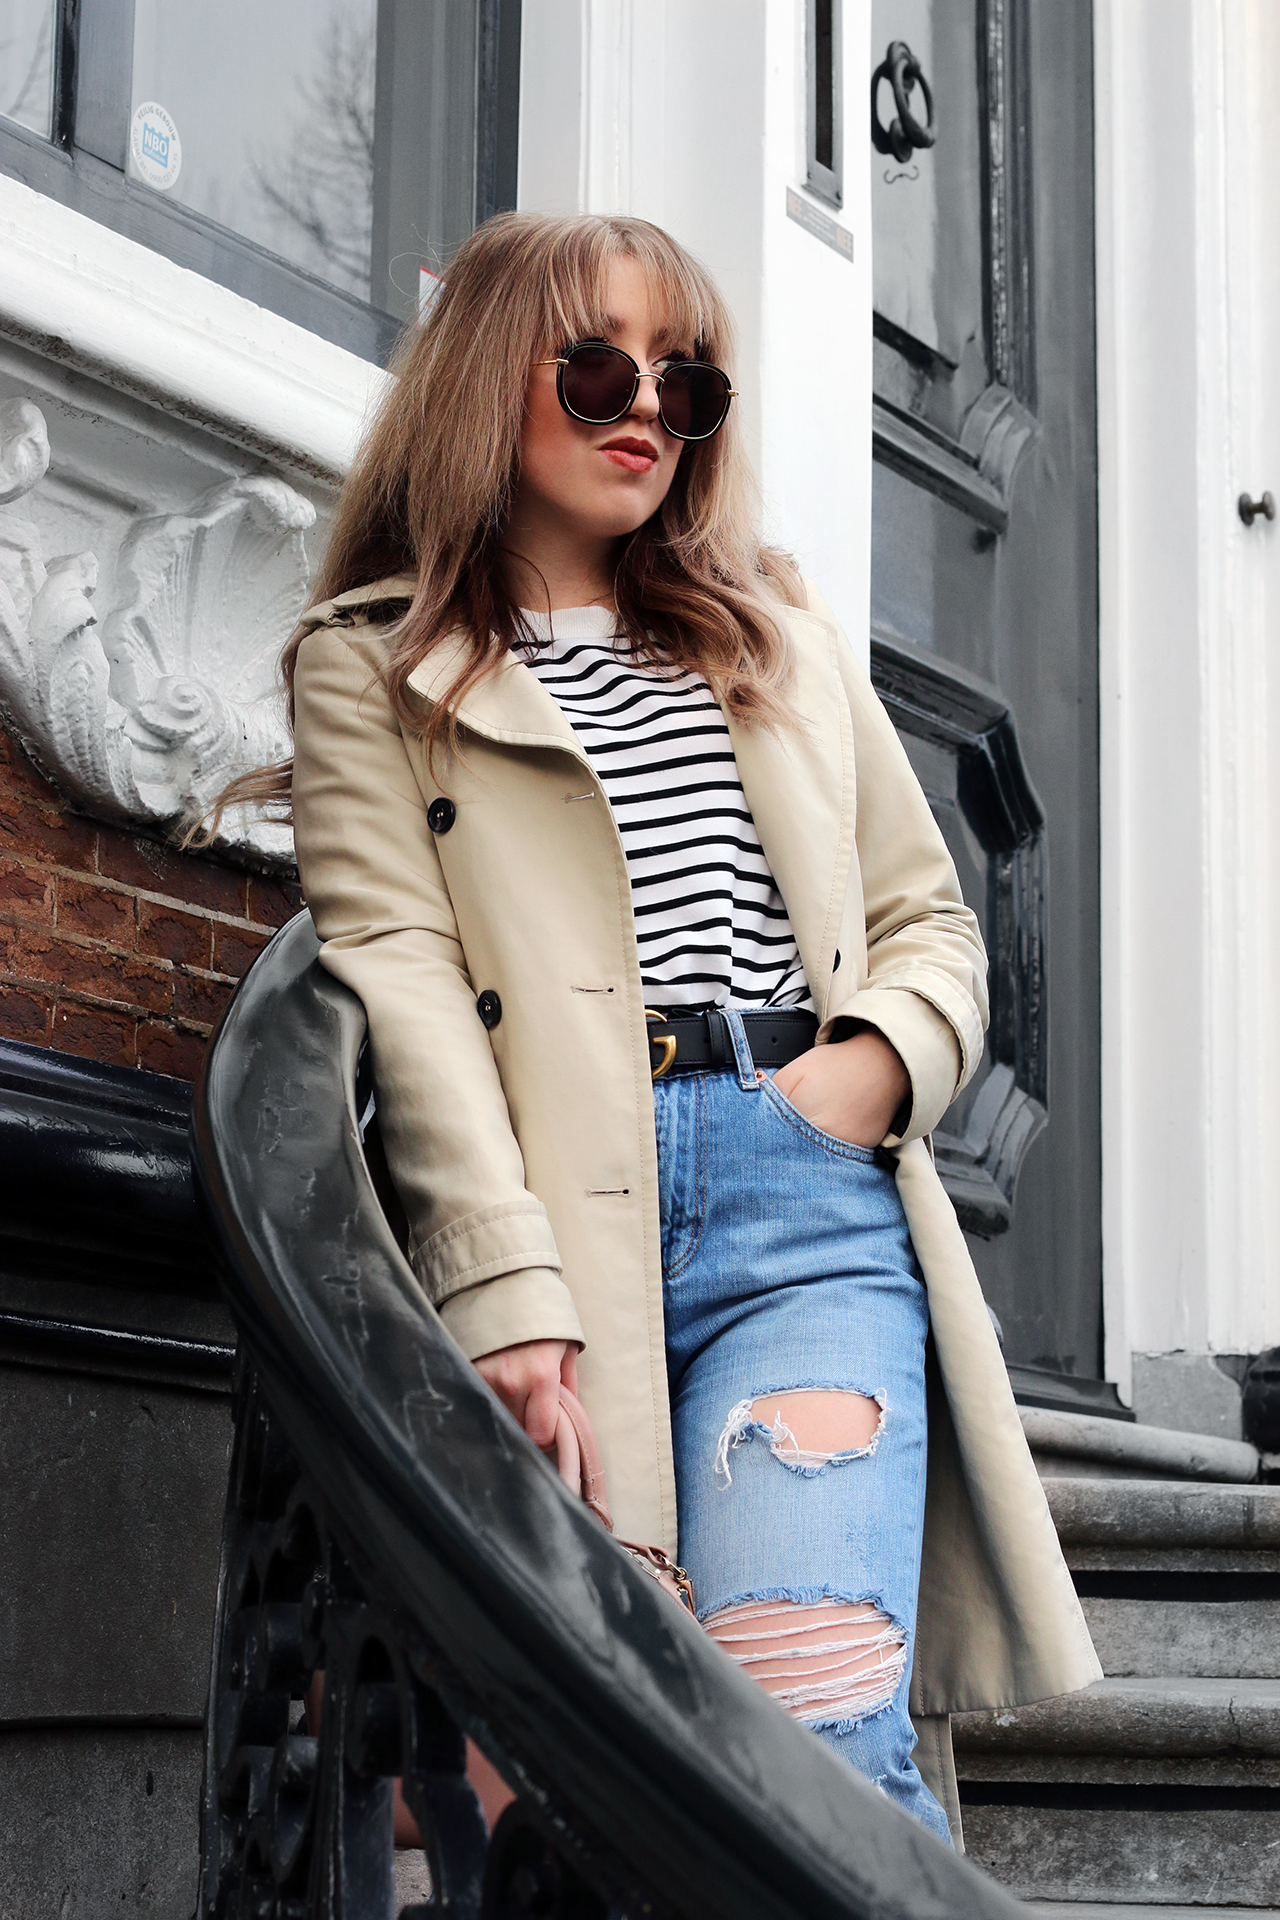 Transitioning Your Outfits from Winter to Spring